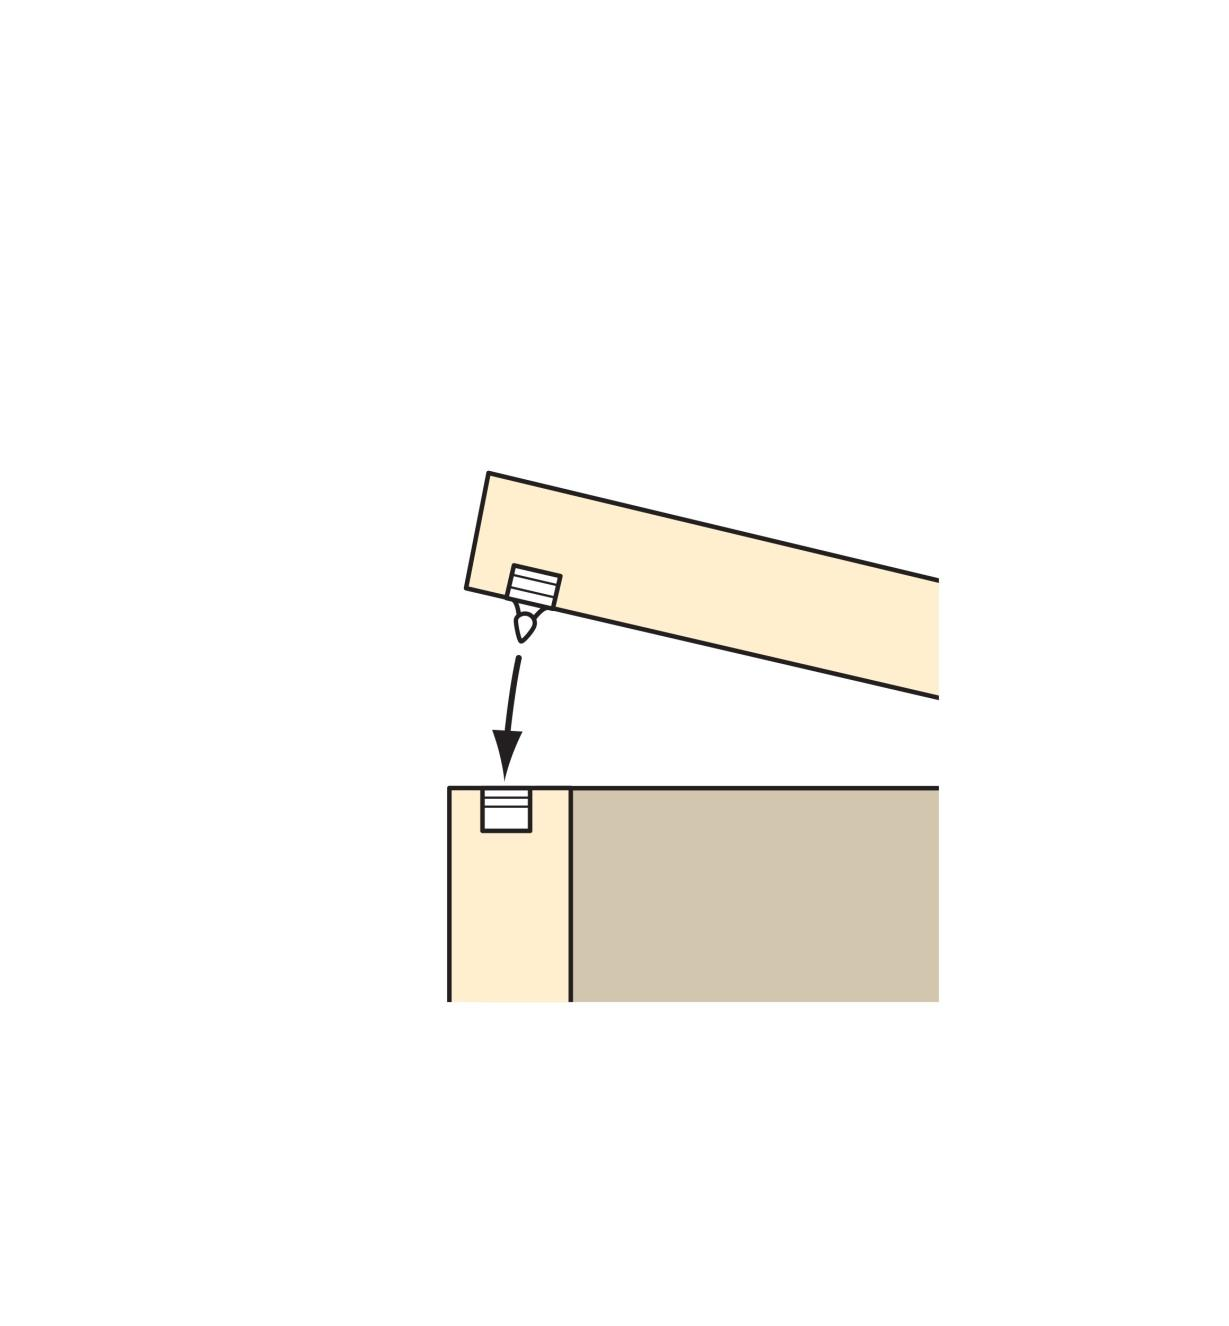 Illustration of a lid being closed using the Lid/Door Snap Closure